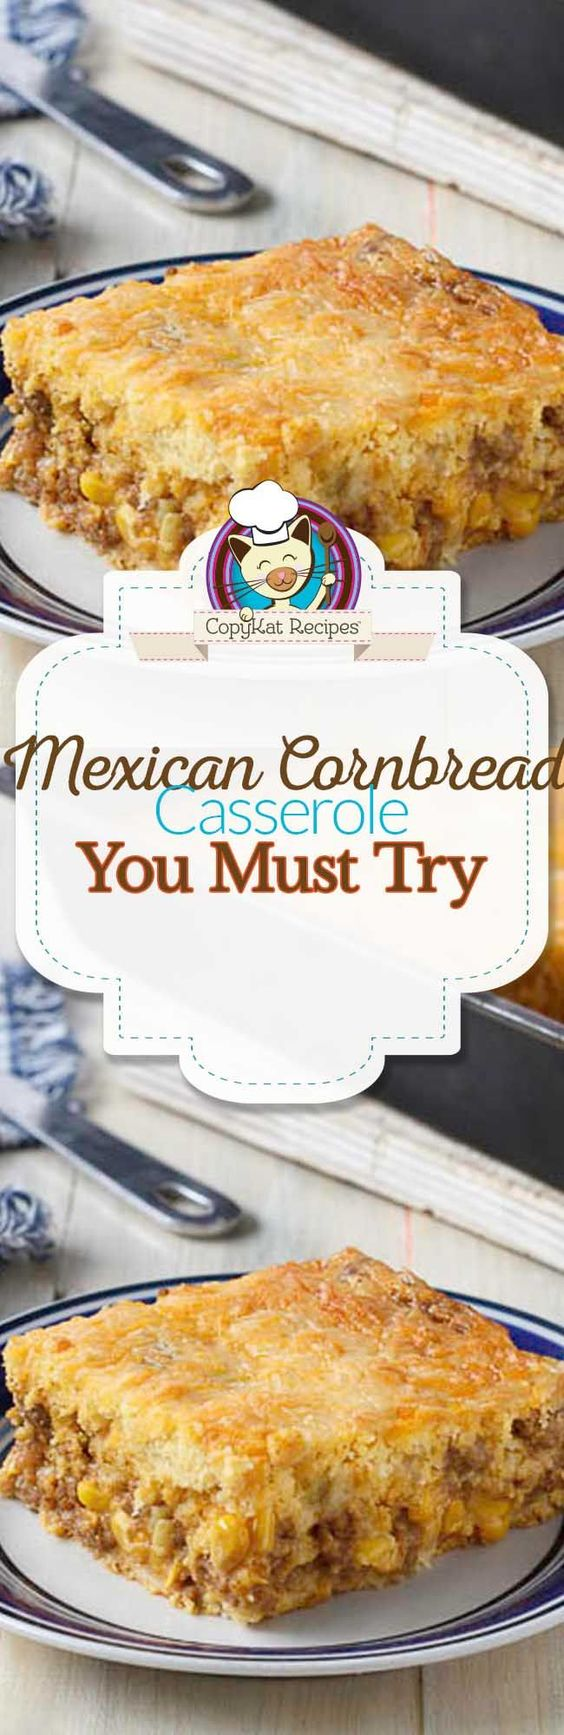 This Mexican Cornbread Casserole is simple and delicious, it is very easy to  make it it reheats very well.